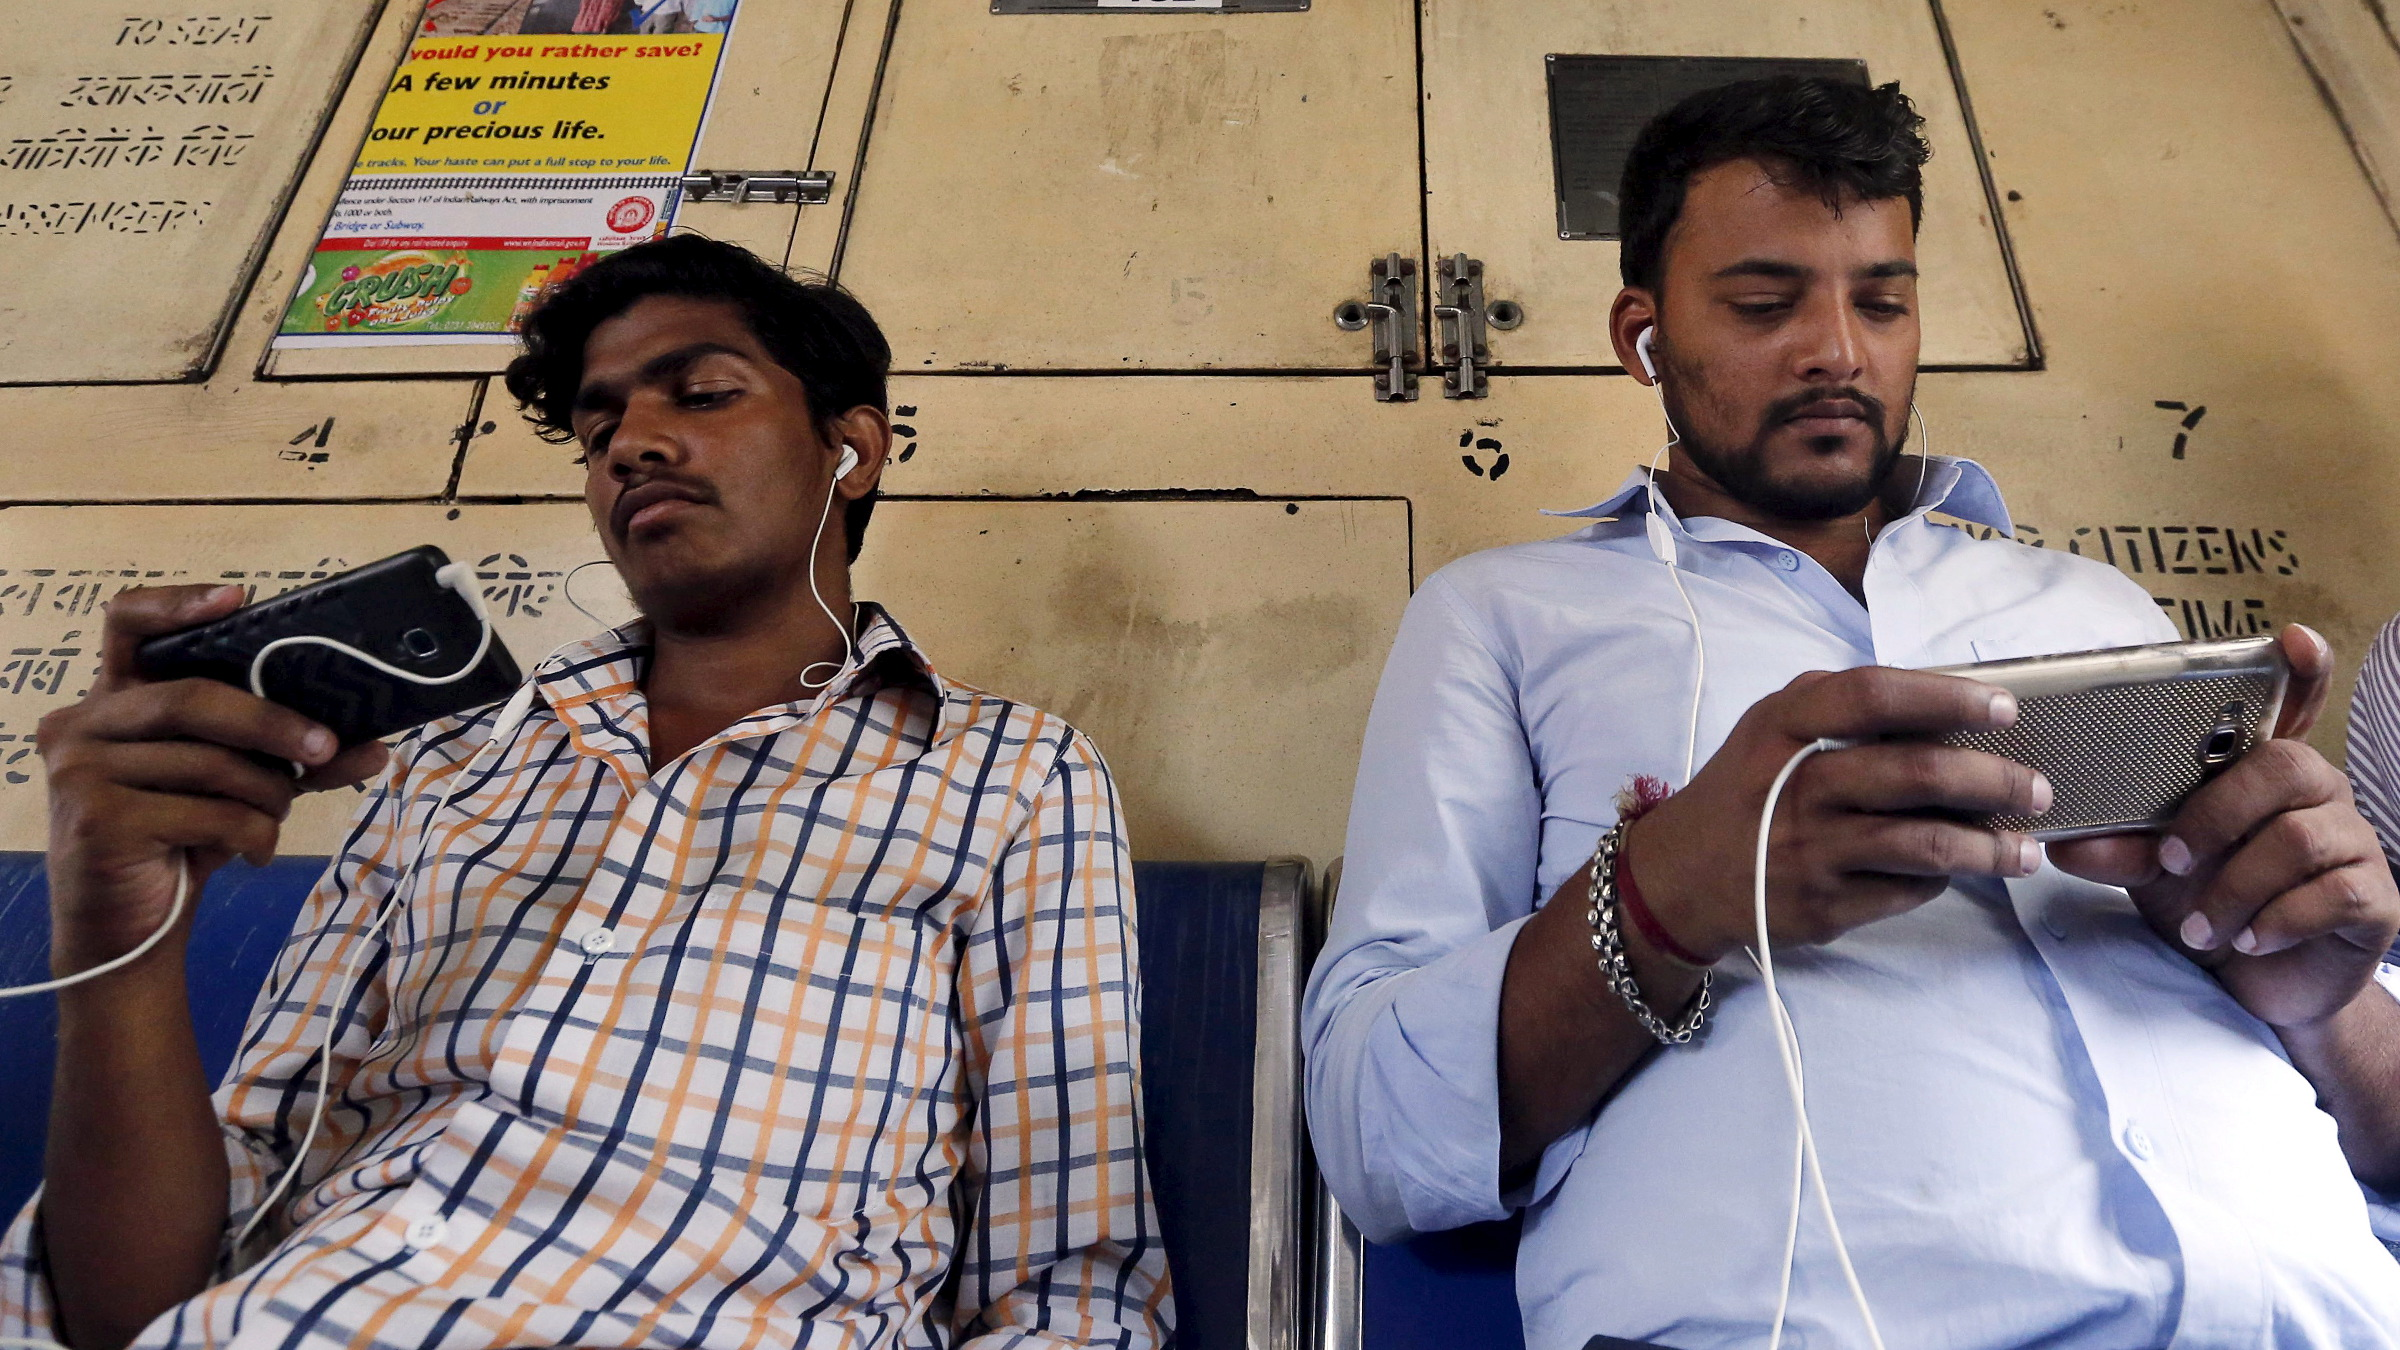 Commuters watch videos on their mobile phones as they travel in a suburban train in Mumbai, India, April 2, 2016. With smartphone sales booming and India preparing for nationwide 4G Internet access, India's film and TV industry hopes the ease of tapping your phone for the latest release will generate profits at last, overcoming the problems of woefully few cinemas and rampant piracy. Picture taken April 2, 2016.